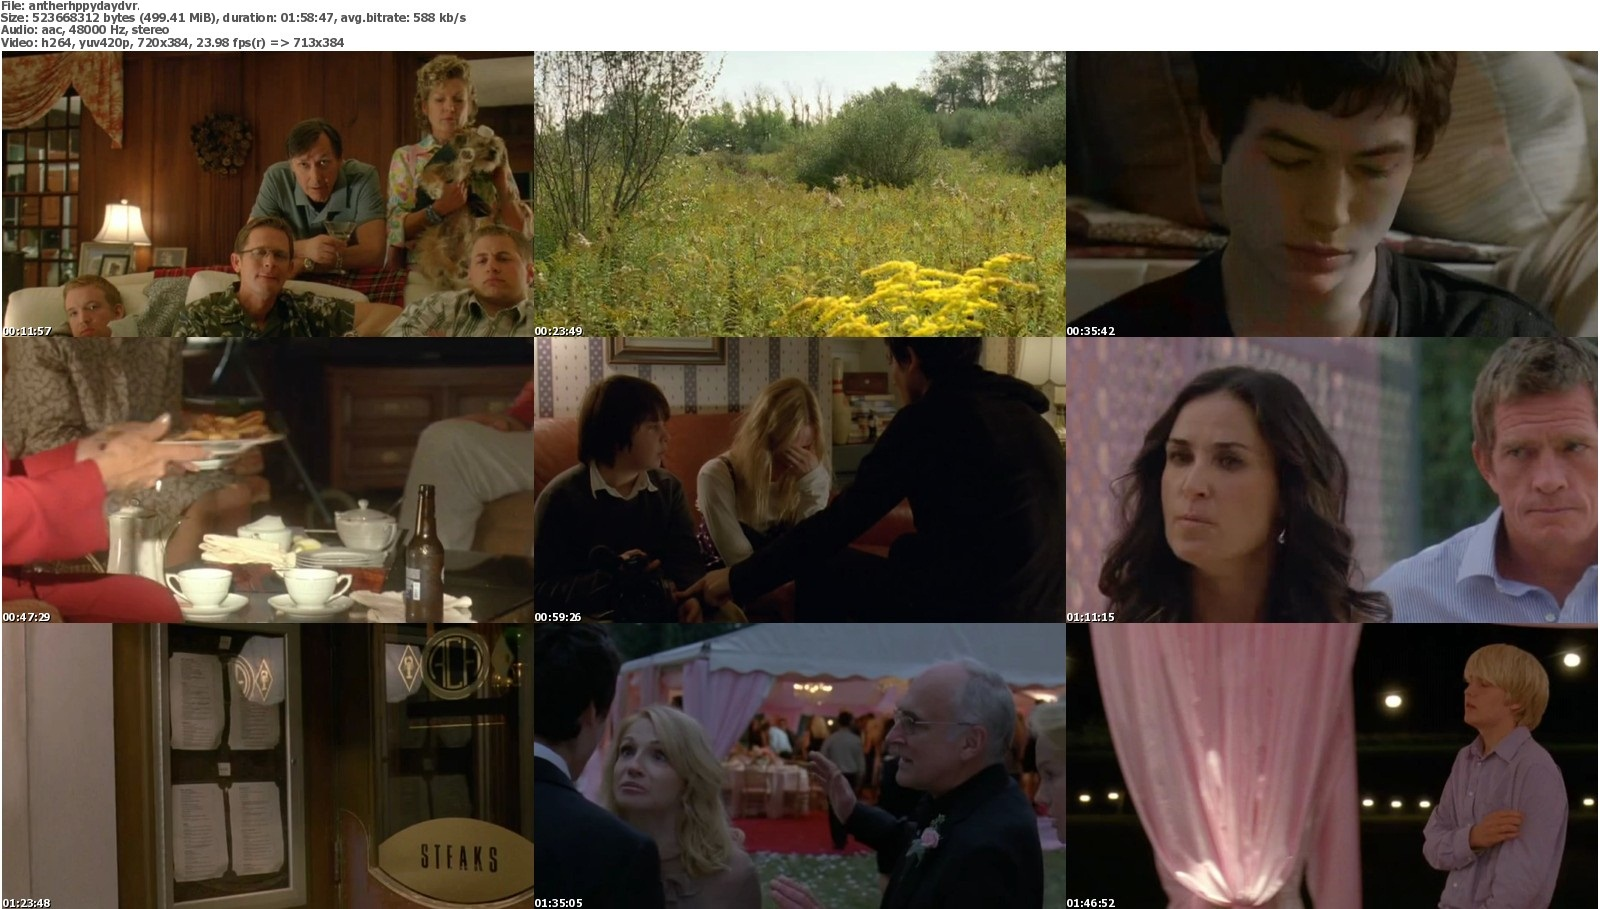 http://3.bp.blogspot.com/-fgOL1K2WnPw/TyiBteXnApI/AAAAAAAADuE/CI8cgO4NUNs/s1600/Another+Happy+Day+(2011)+DVDRip+500MB.jpg